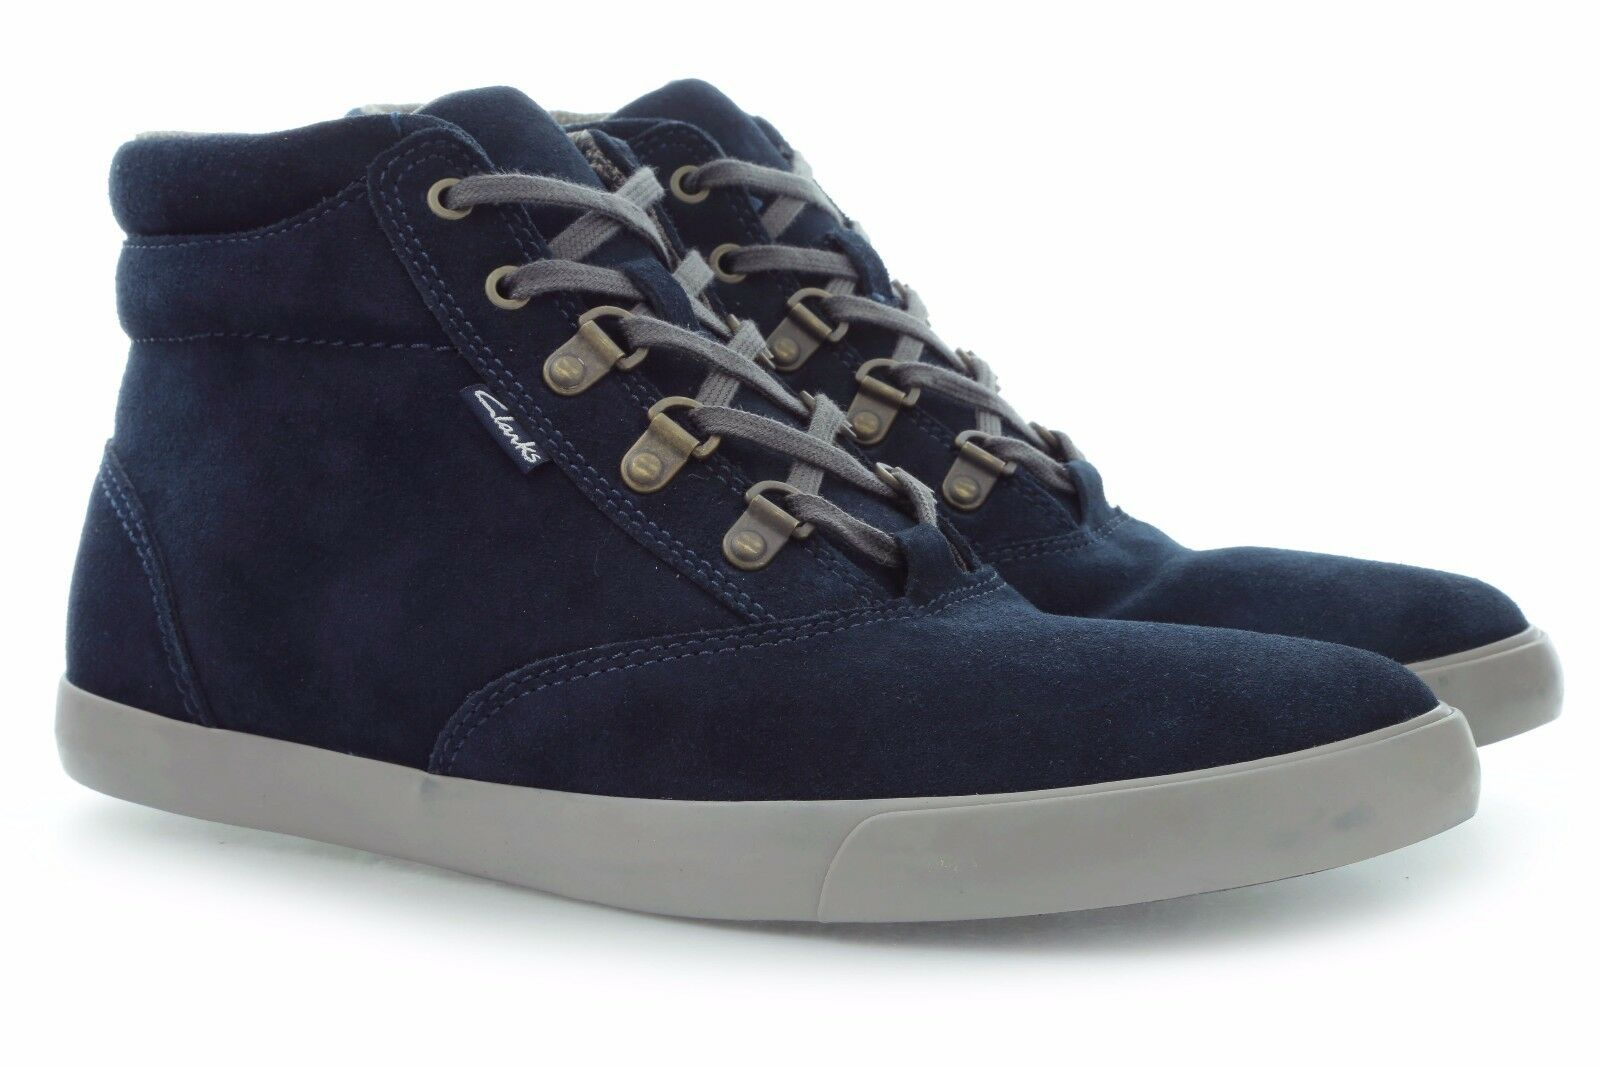 NEW CLARKS TRAINERS TORBAY PEAK HI TOP SOFT SUEDE TRAINERS CLARKS BOOTS VARIOUS SIZES a8783f